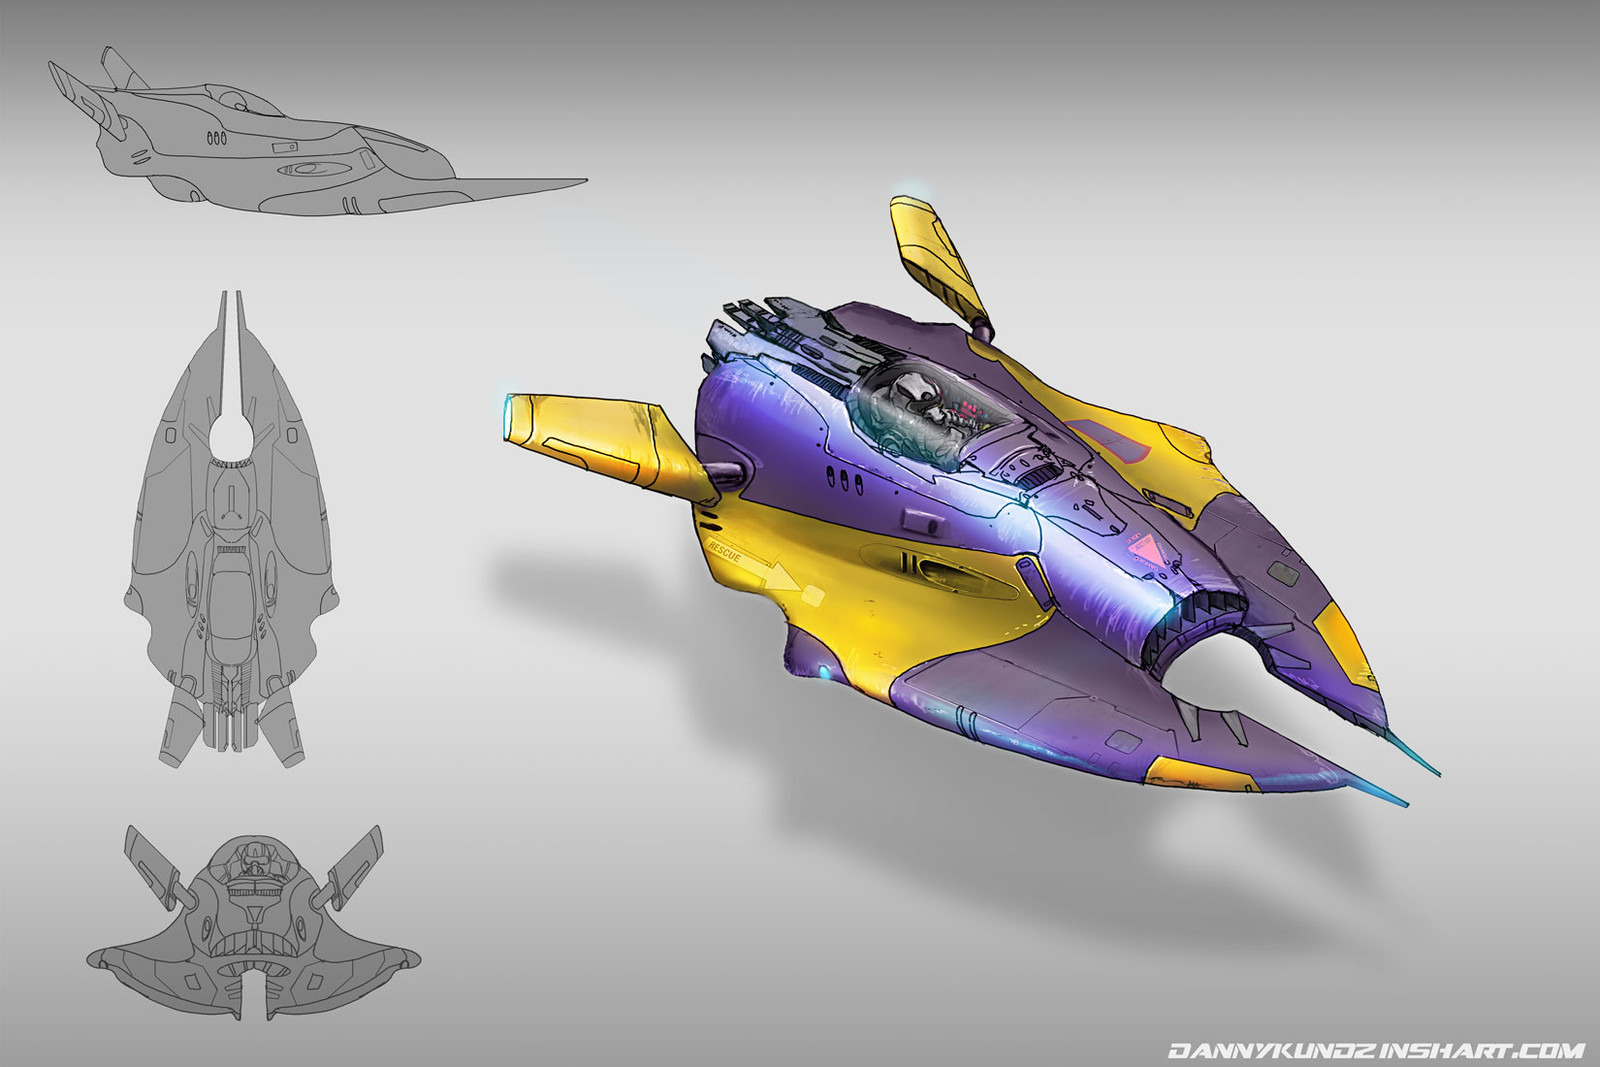 Racing aircraft concept art